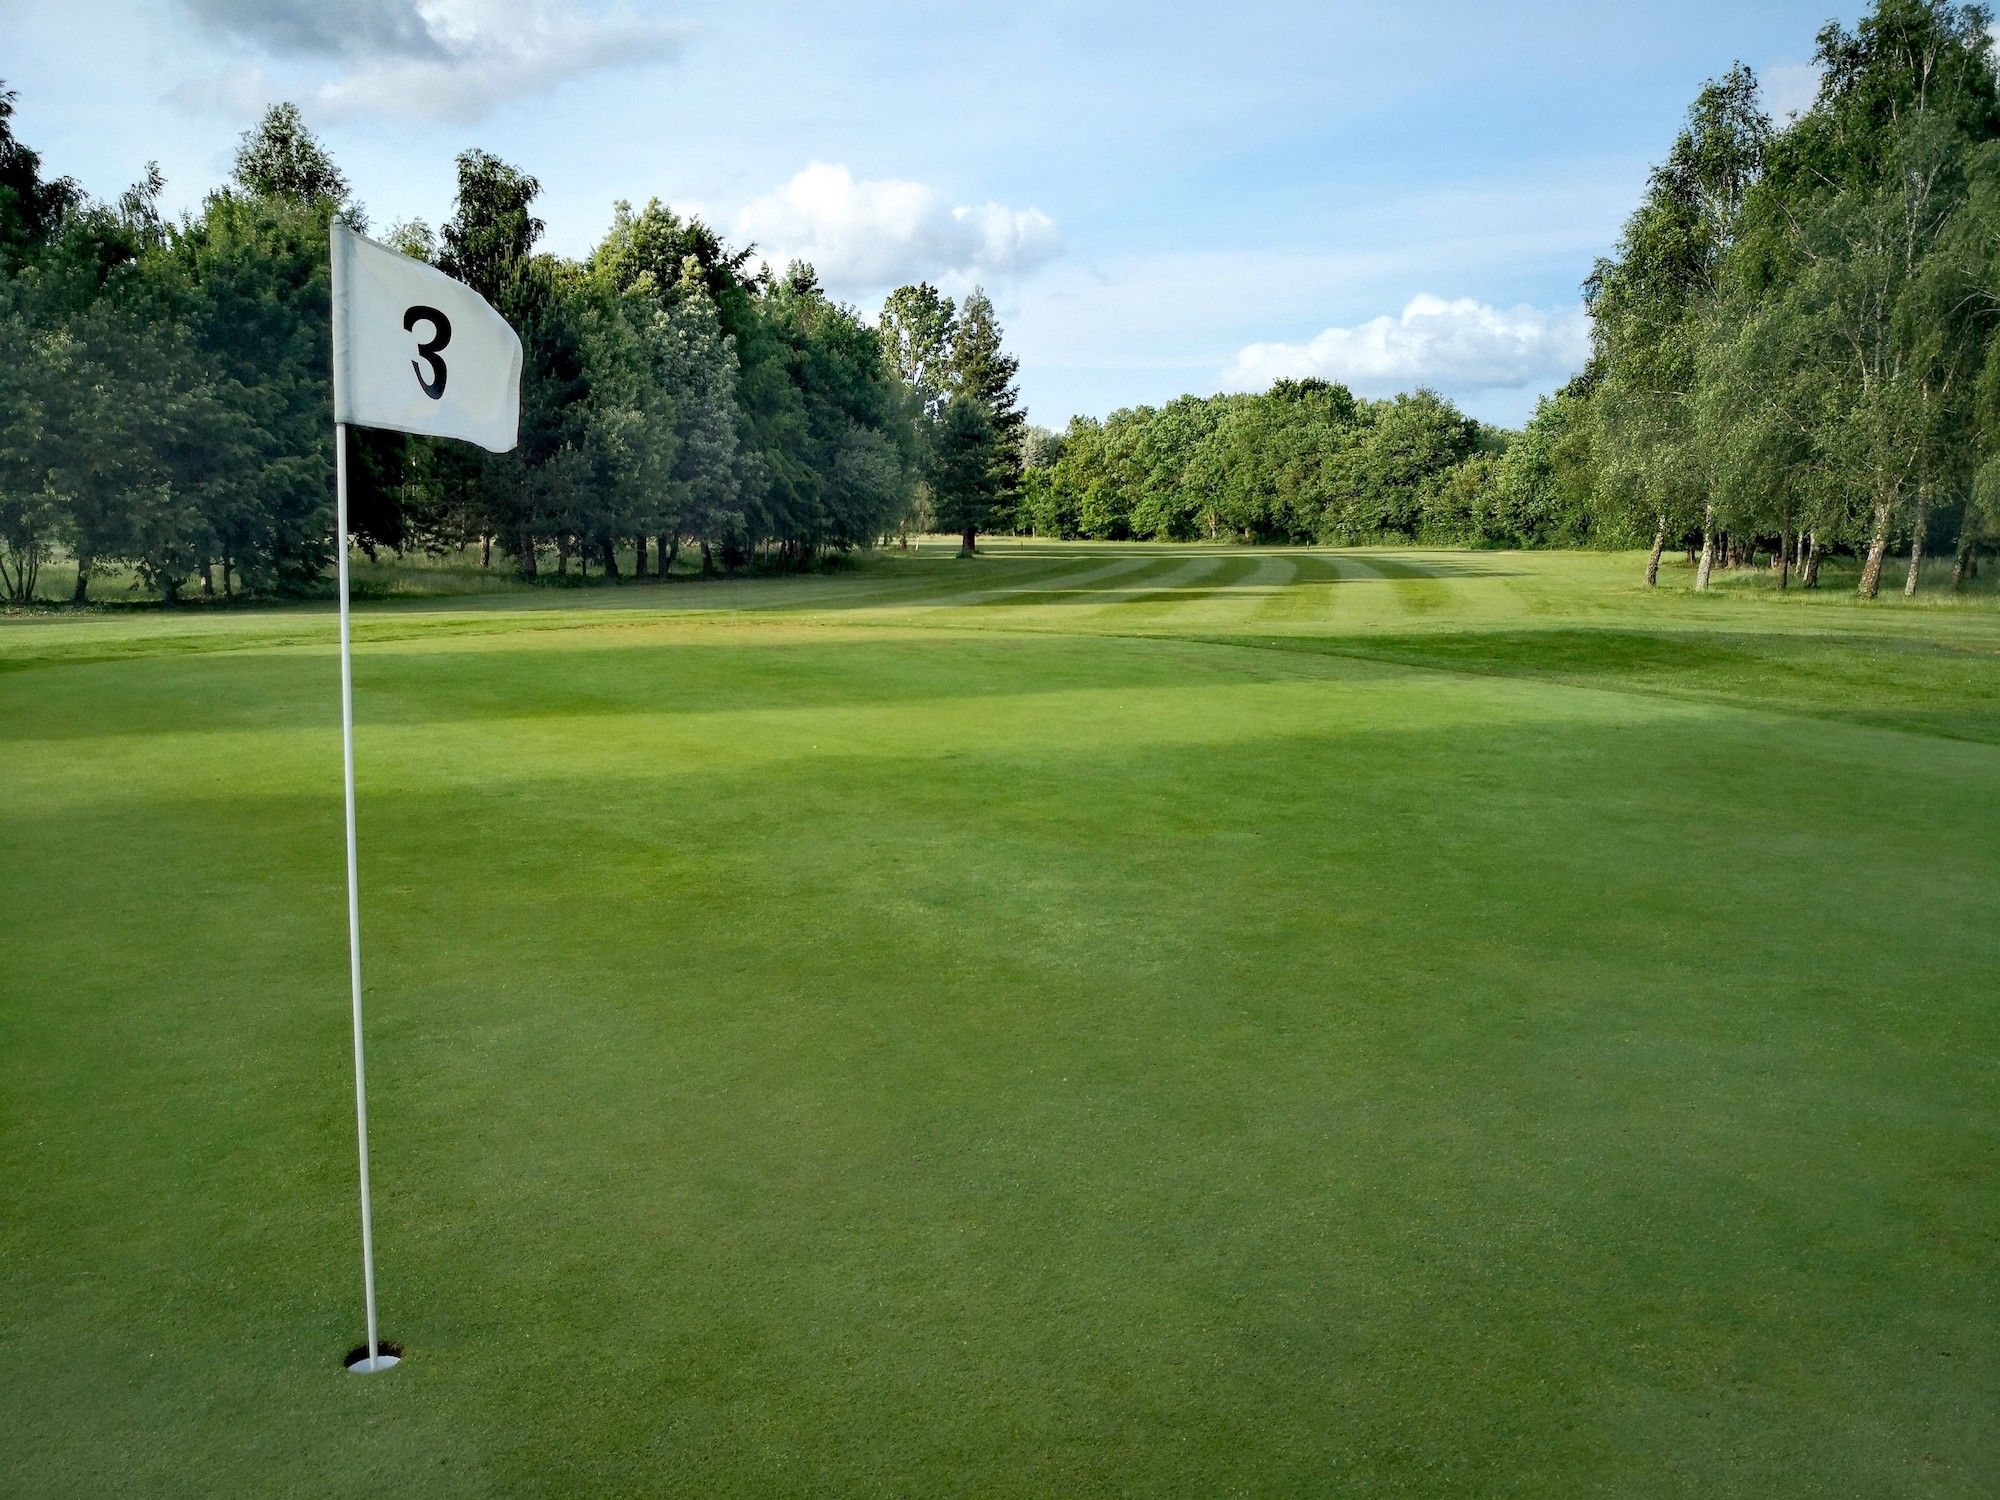 Green 3 Anjou Golf juin 2019 .jpg